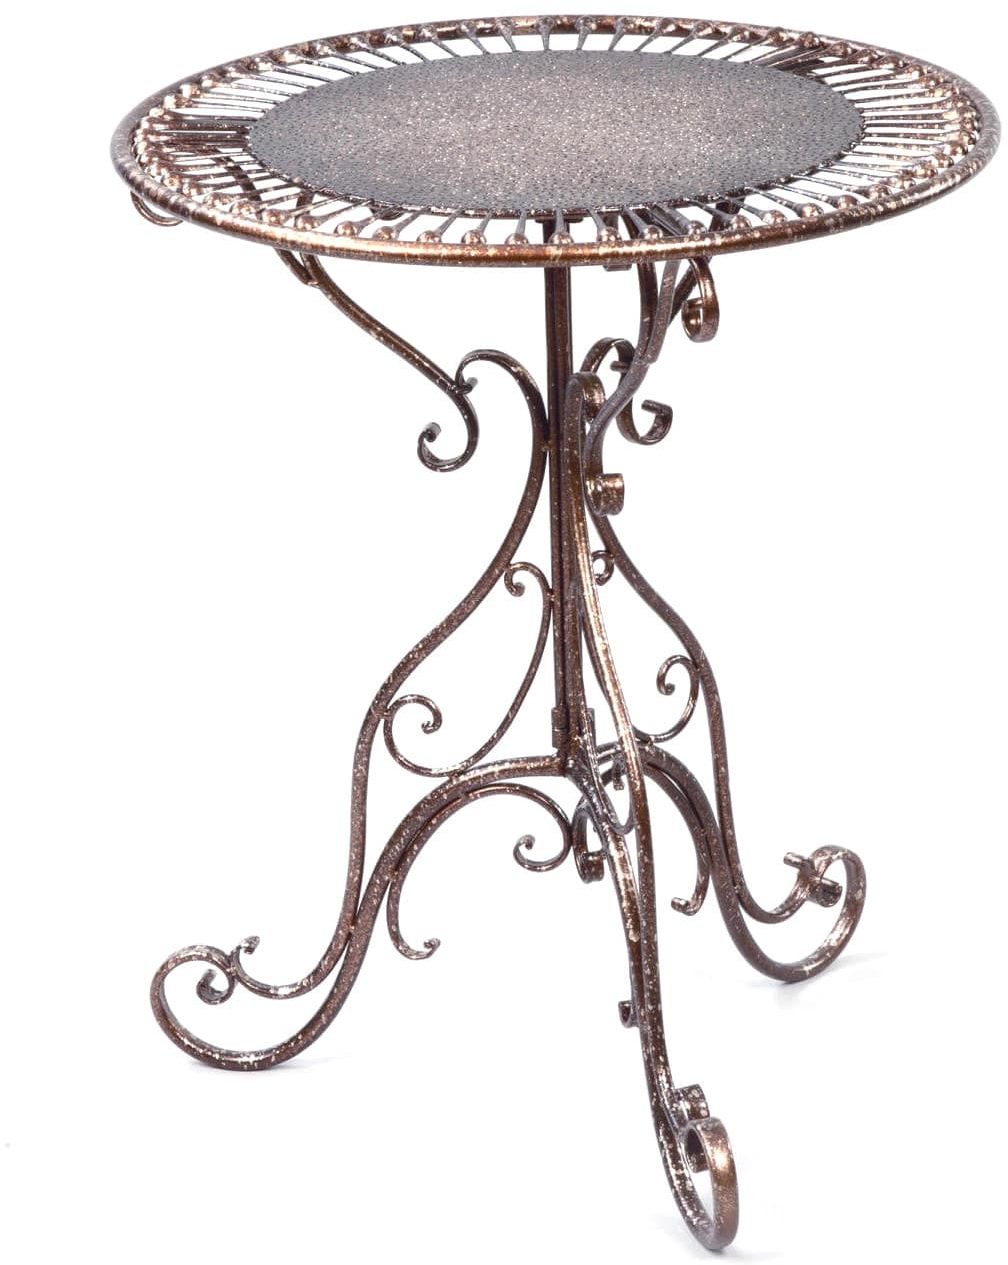 bronze metal decorative accent table coffee console end res tables product information dark gray hand painted chest drawers small outdoor wrought iron pottery barn dining